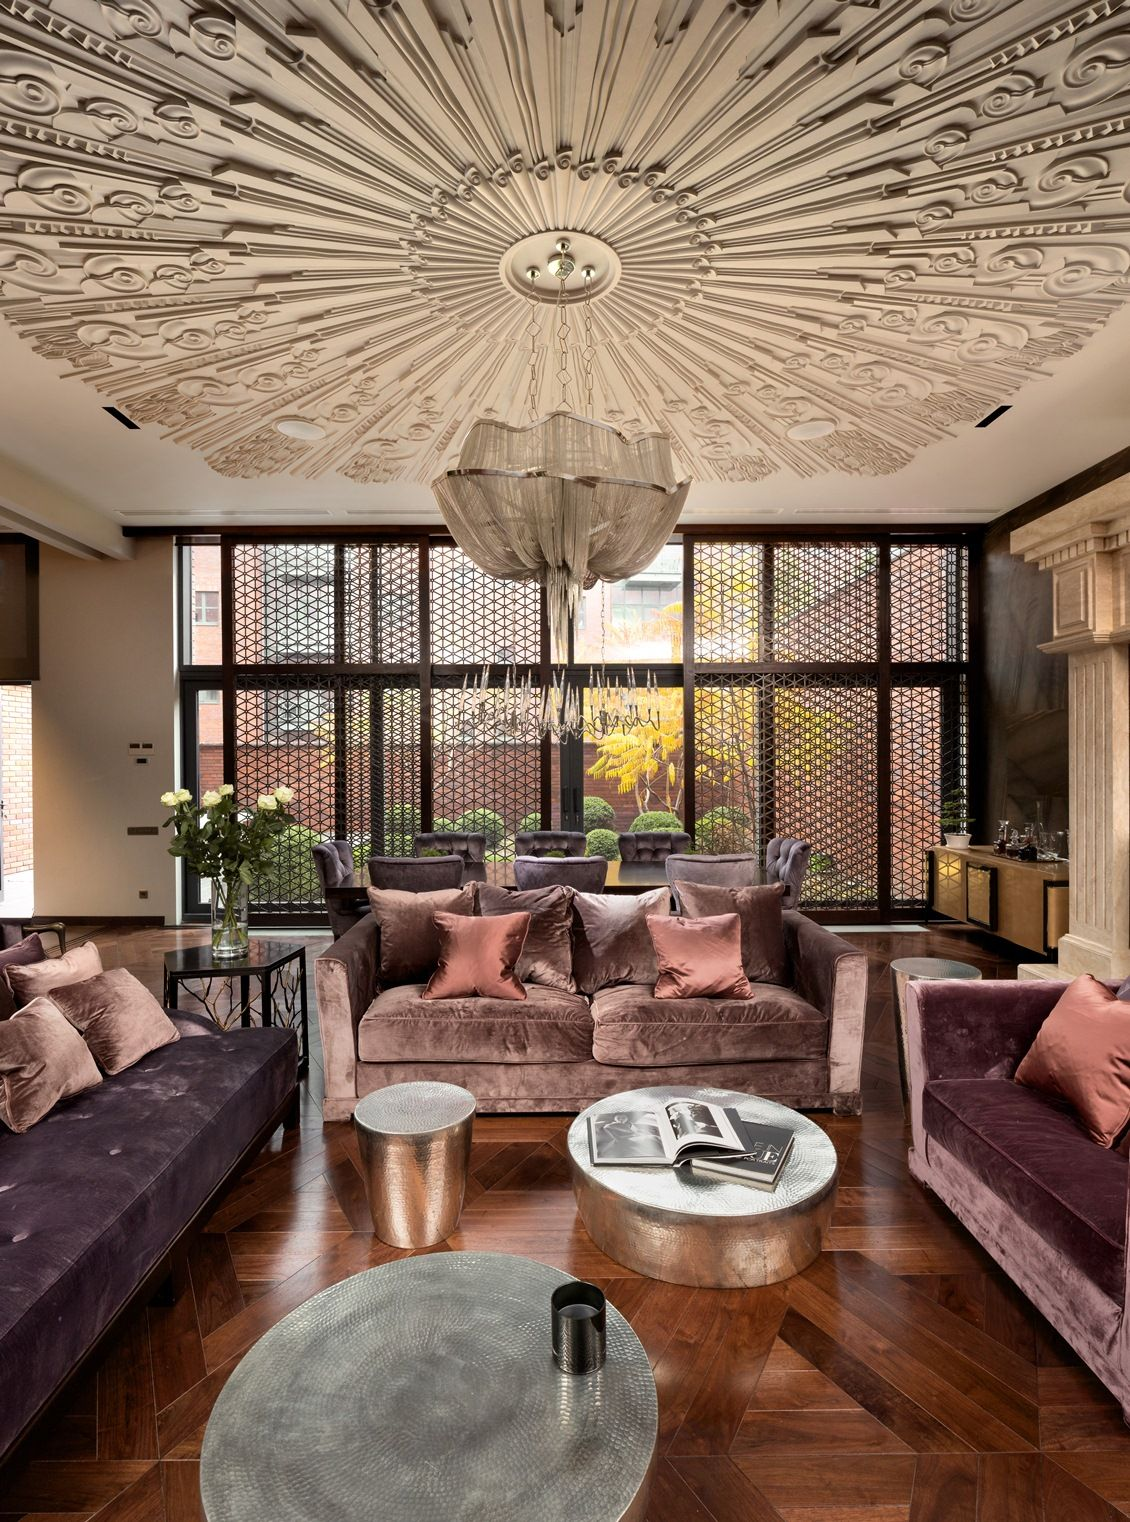 Art deco design in its original incarnation was a testament to new technologies and progress this design starting with the living rooms masterfully